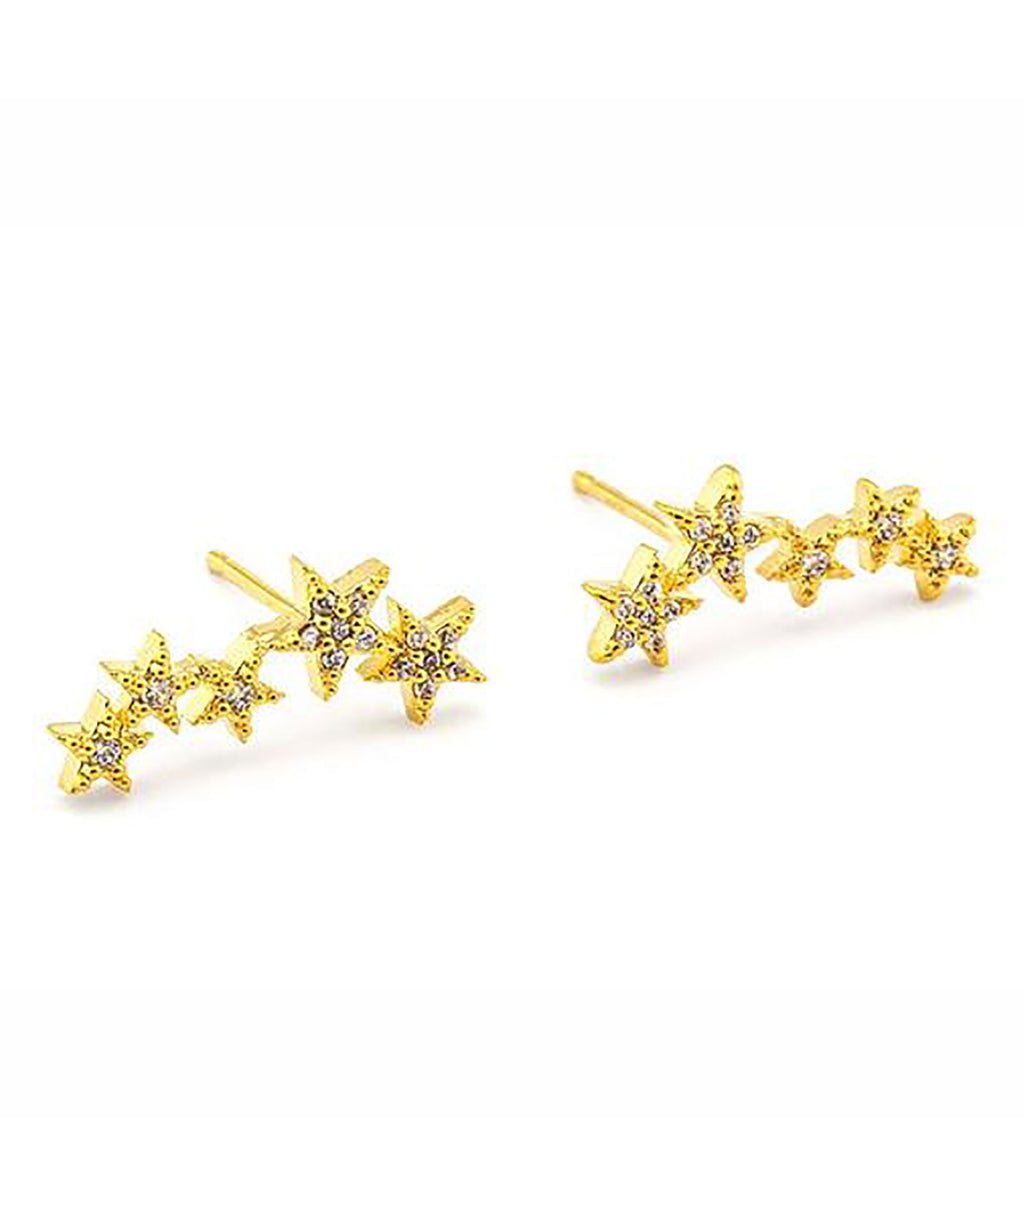 TAI Five Star Constellation Earrings